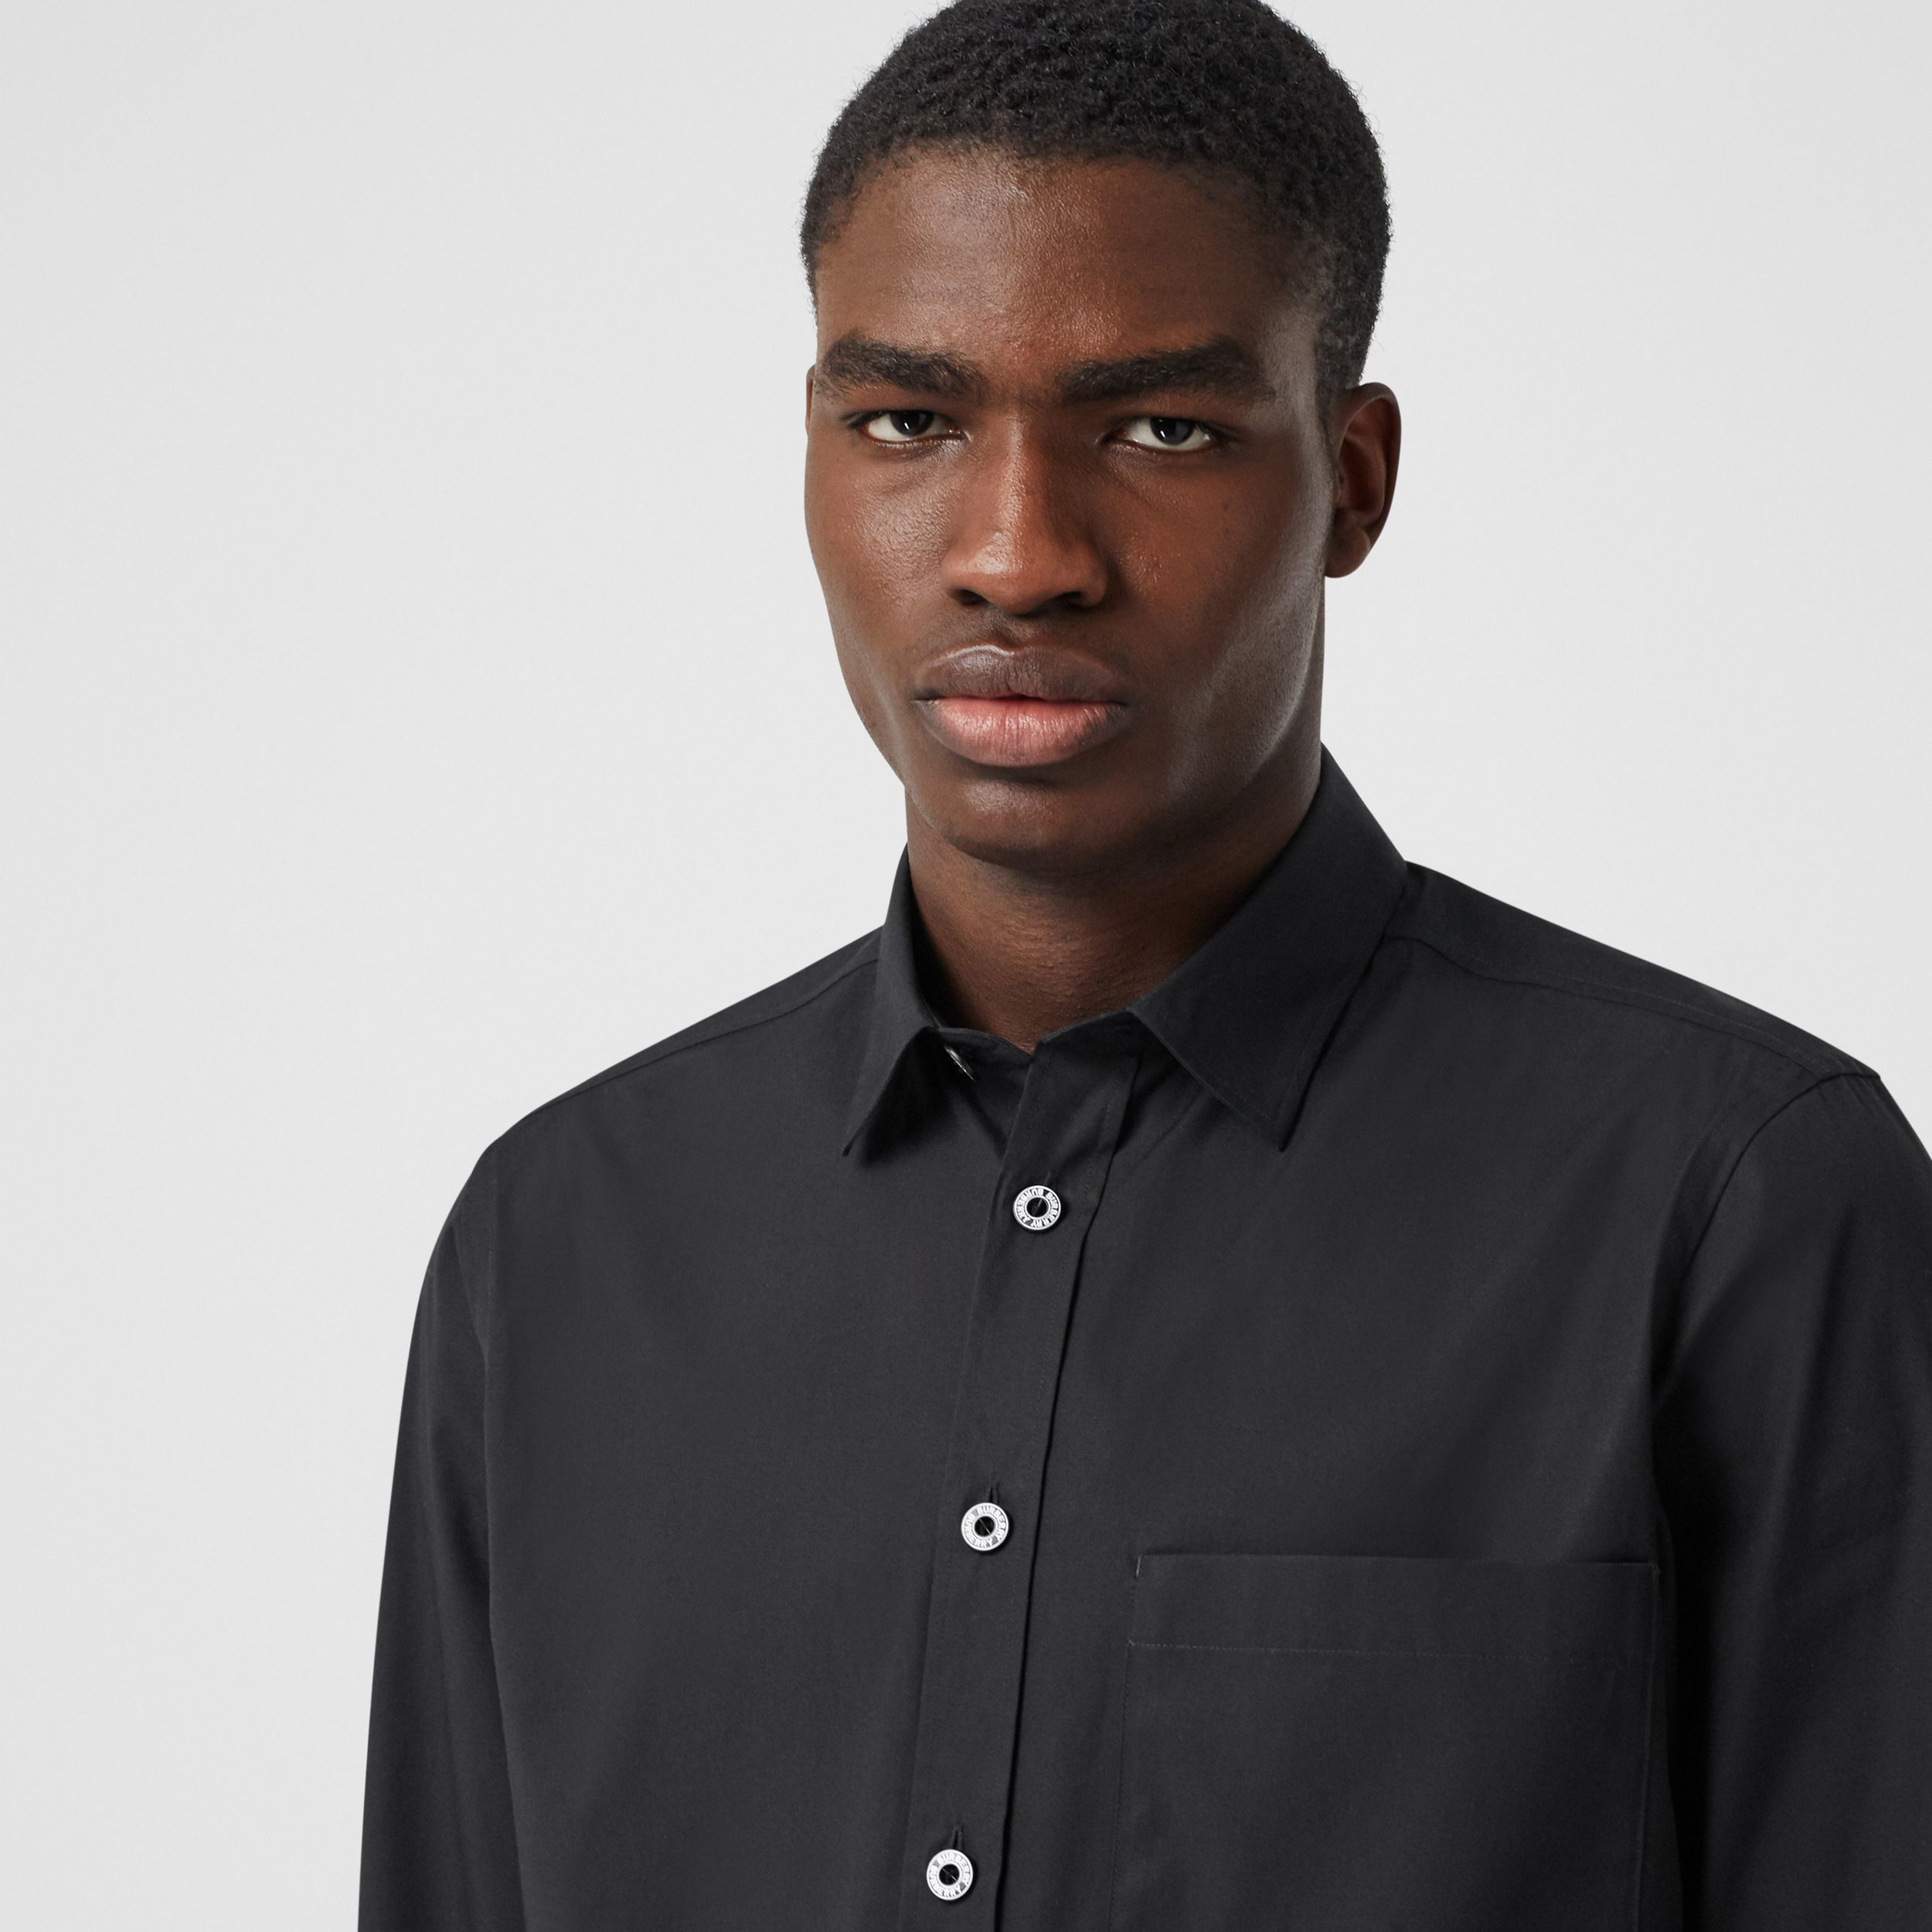 Slim Fit Stretch Cotton Poplin Shirt in Black - Men | Burberry - 2